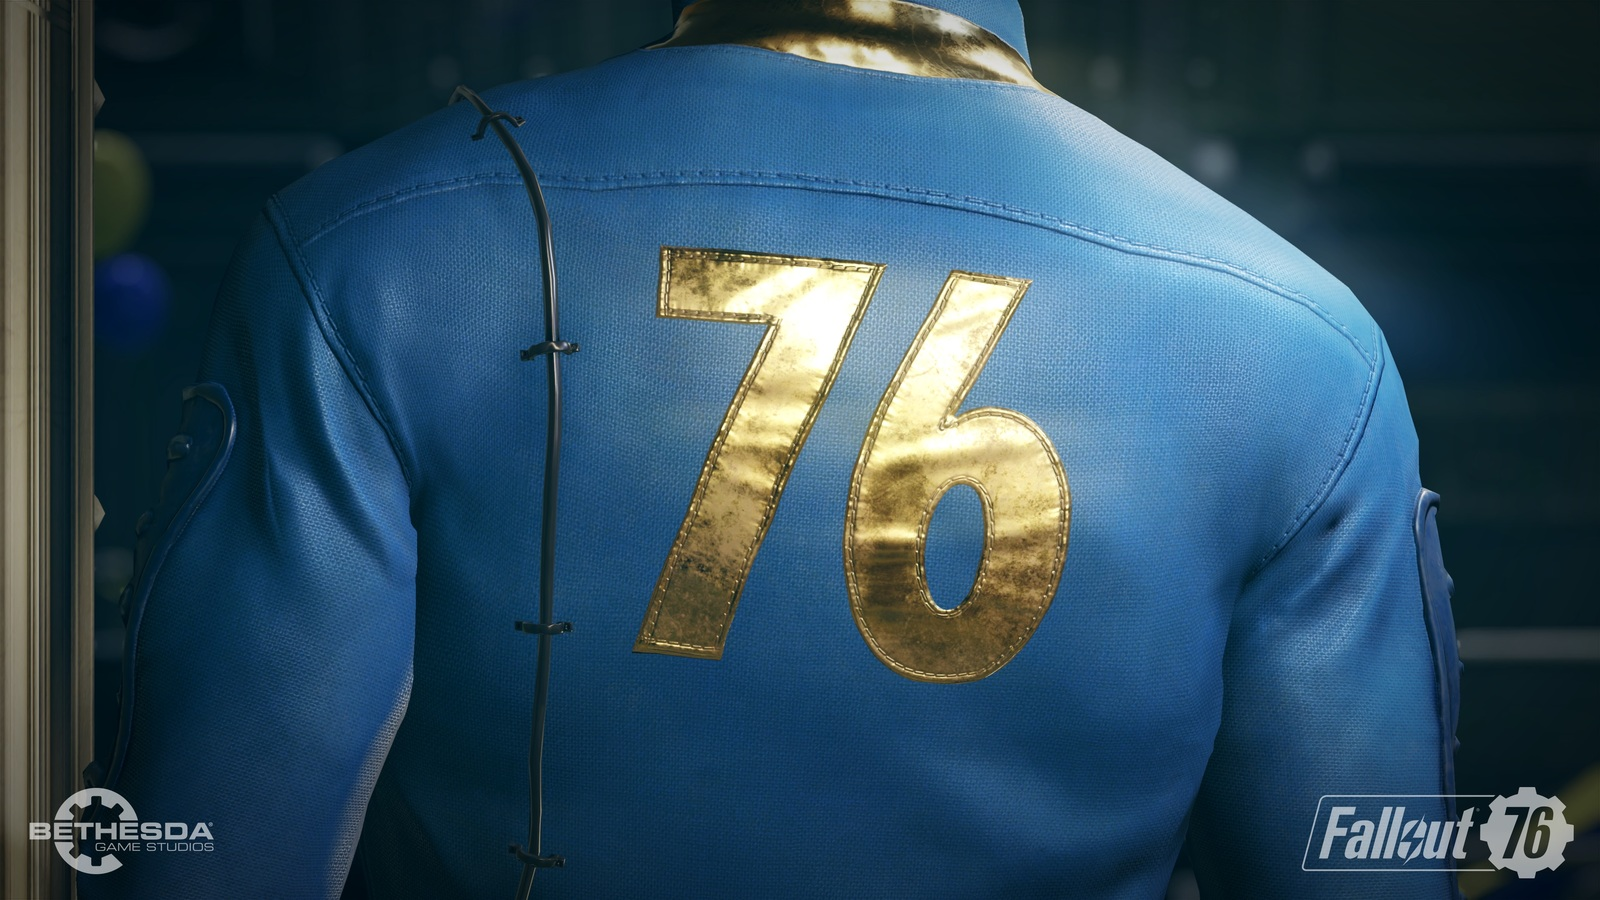 Fallout 76 for Xbox One image